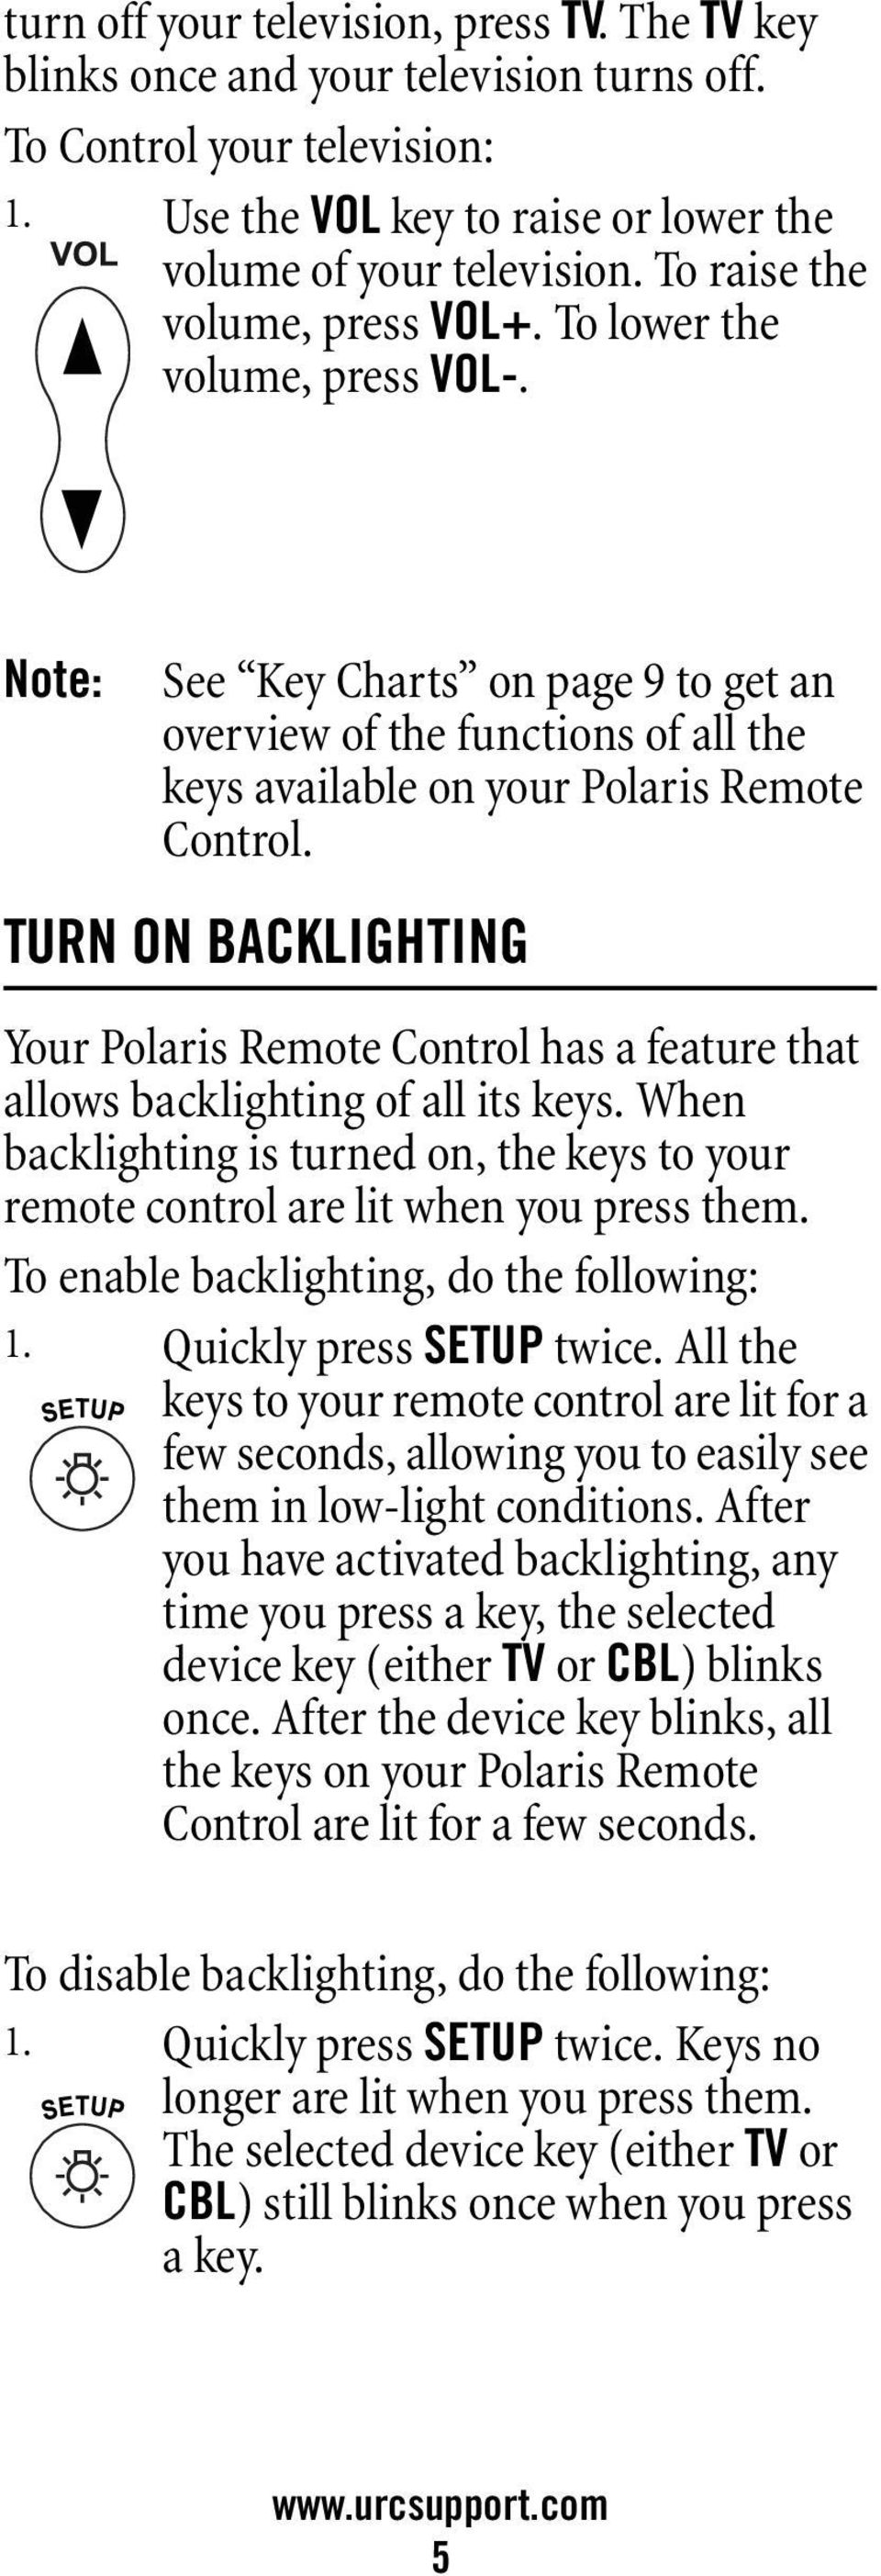 TURN ON BACKLIGHTING Your Polaris Remote Control has a feature that allows backlighting of all its keys. When backlighting is turned on, the keys to your remote control are lit when you press them.